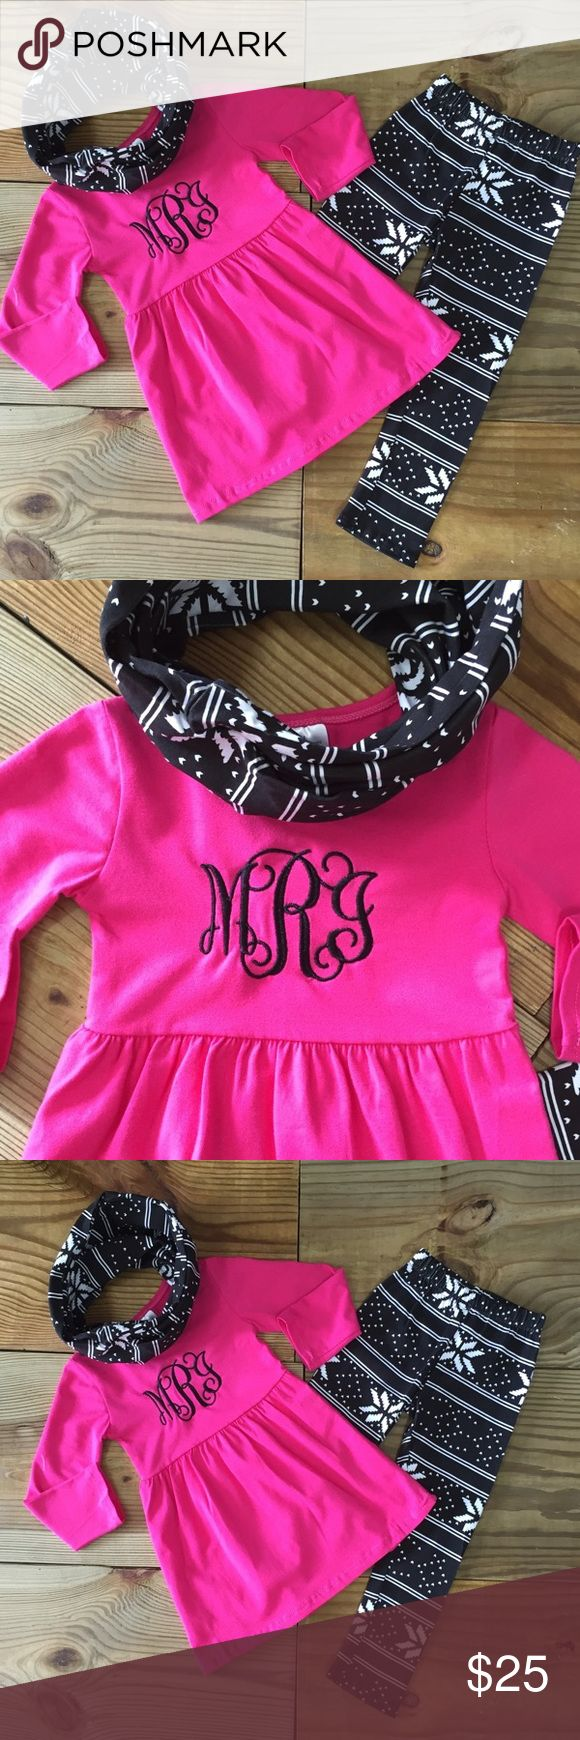 Hot Pink 3-Pc Snowflake Infinity Scarf Outfit Girls 3-Pc snowflake infinity scarf outfit includes a hot pink tunic top, snowflake print leggings, and matching scarf. Perfect for the holidays and all winter! Adorable for photo shoots! Monogram NOT included! cotton/Spandex TRUE TO SIZE....PRICE IS FIRM! Moxie Girl Matching Sets